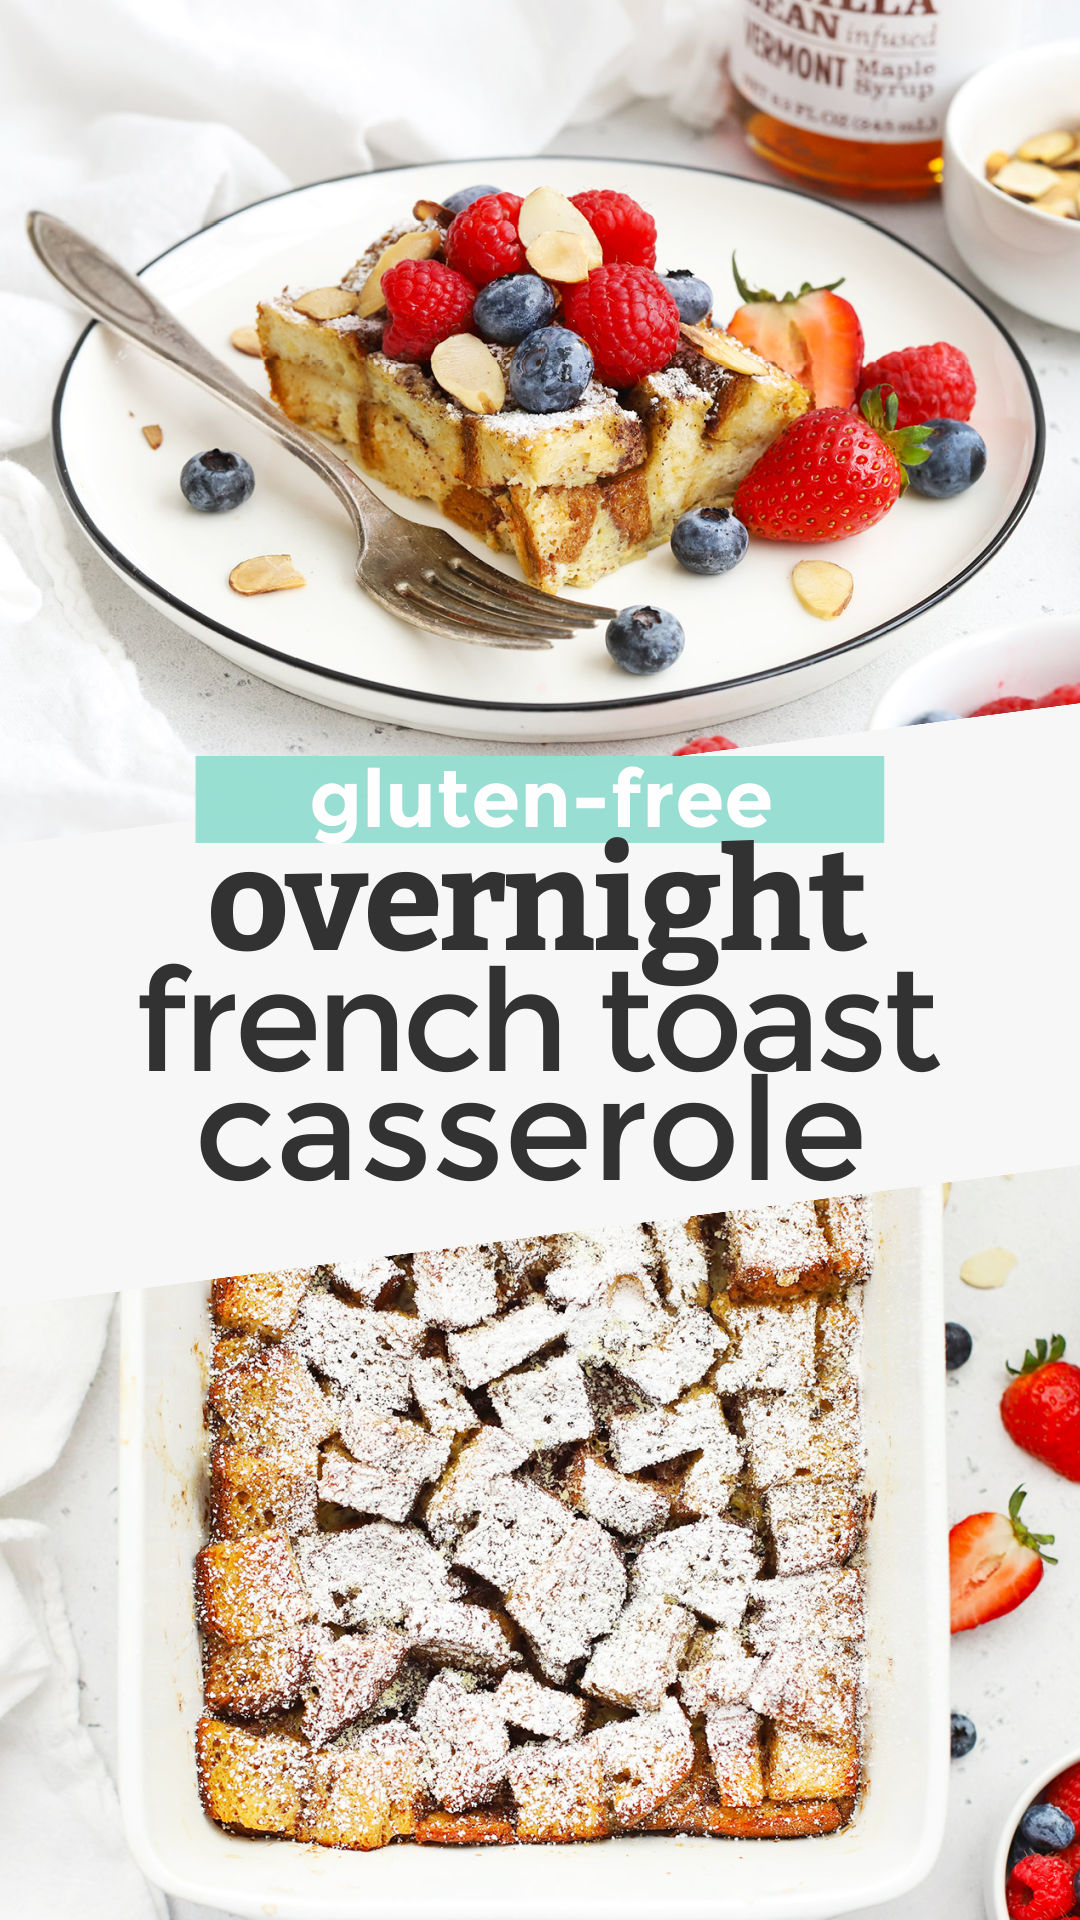 Gluten-Free French Toast Casserole - This easy overnight French toast casserole takes all the hassle out of French toast! Try our classic recipe or one of the tasty variations in the post for a fun treat! (Gluten-Free + Dairy-Free) // Gluten Free French Toast Bake // Gluten-Free Baked French Toast // Gluten-Free Overnight French Toast Casserole #frenchtoast #casserole #breakfastbake #brunch